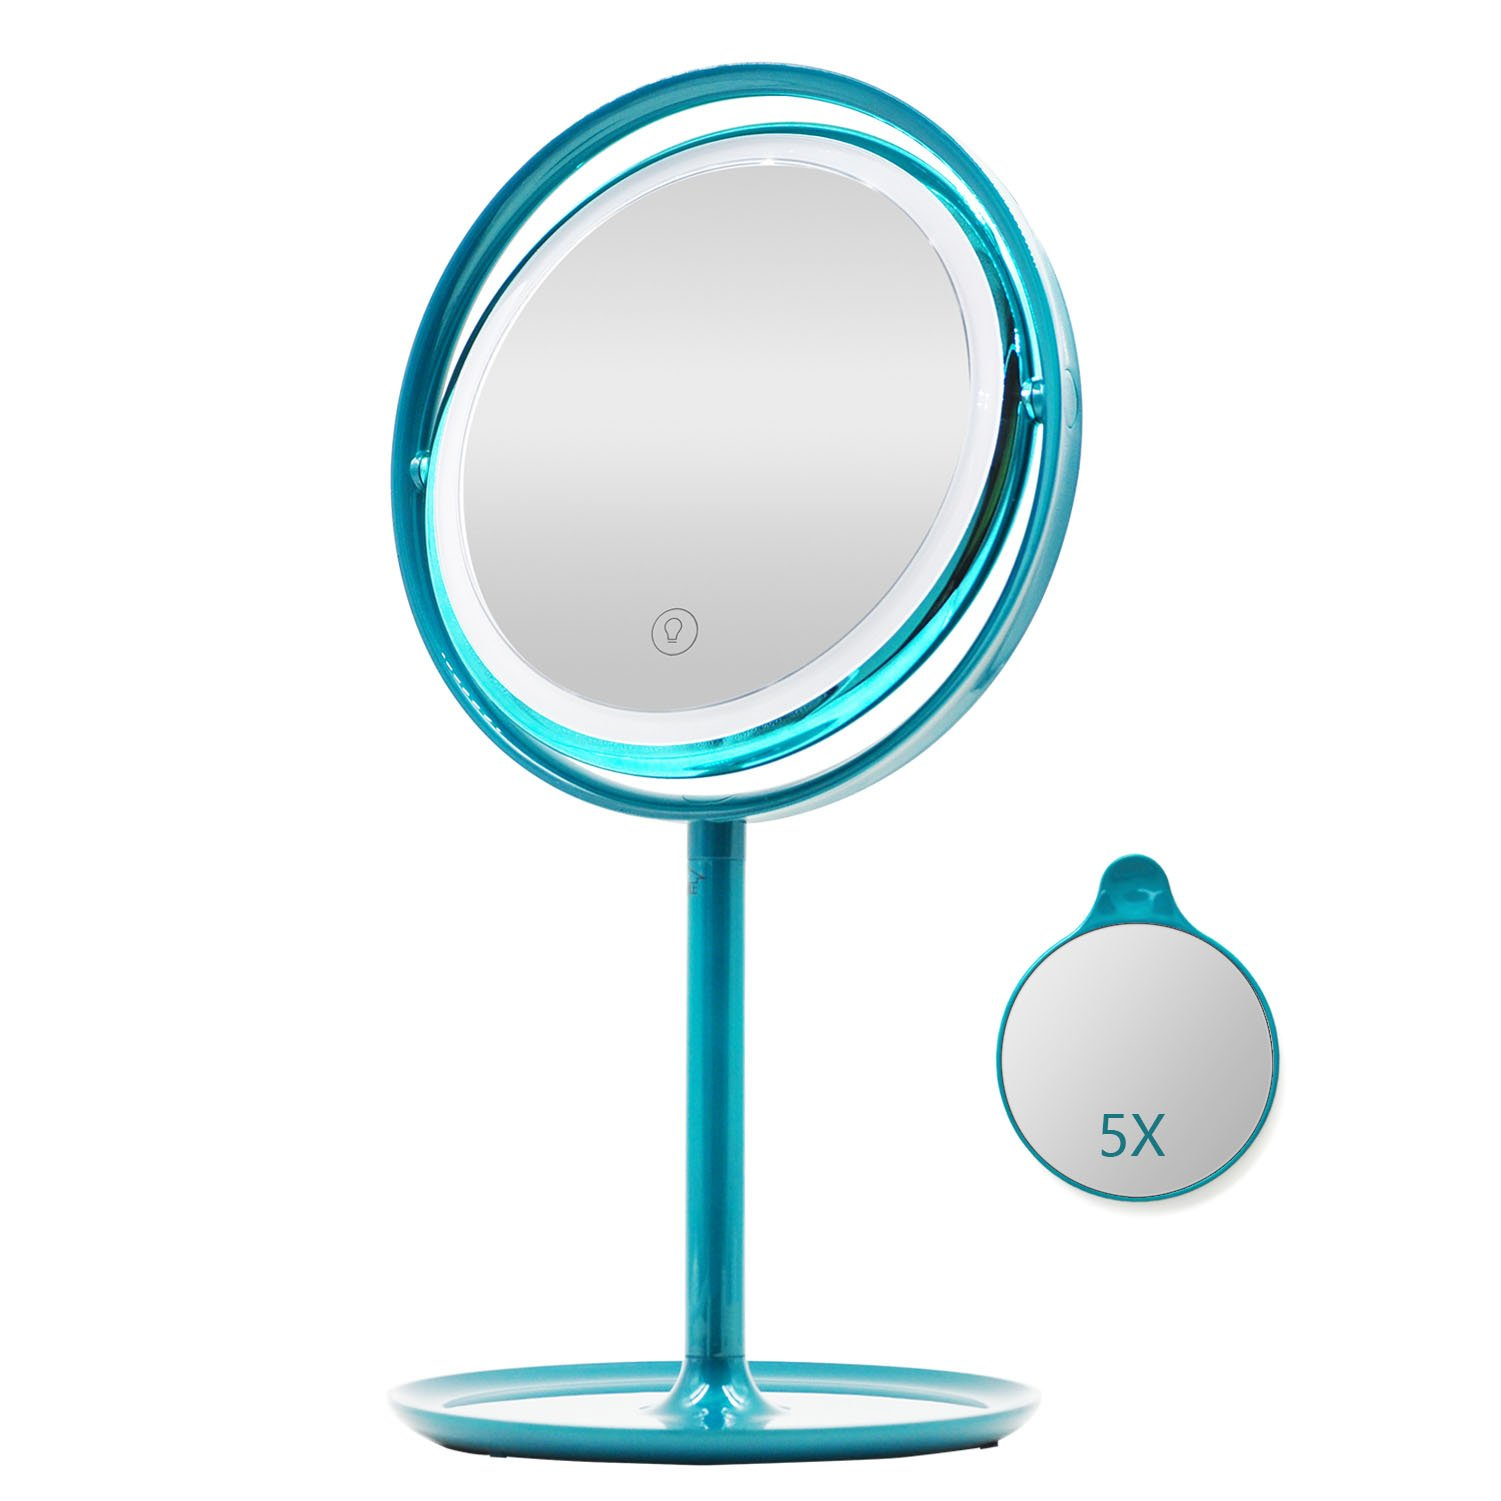 UPHAN U7 Surgical Grade Lighted Makeup Mirrors, 7 inch Luxury Dual Light Color Dimming Light with 5X Detail Mirror, Malachite green ¡­ (Surgical Grade) by UPHAN (Image #1)